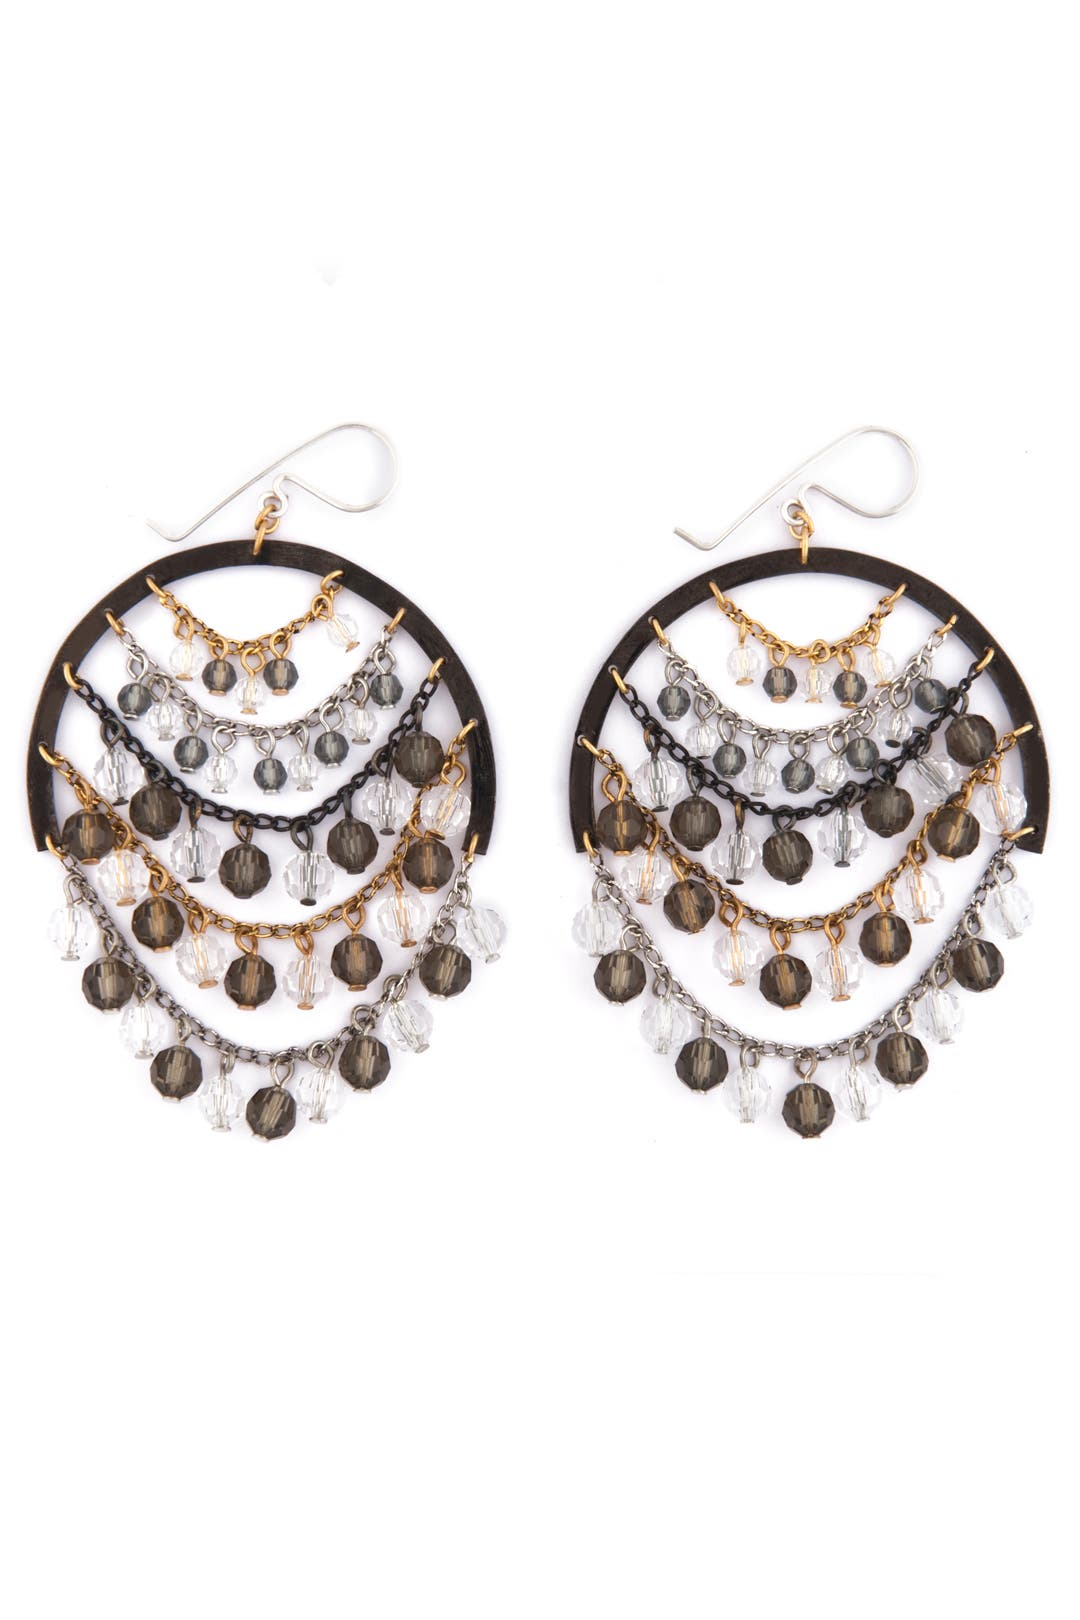 Crystal Chandelier Earrings by Erickson Beamon